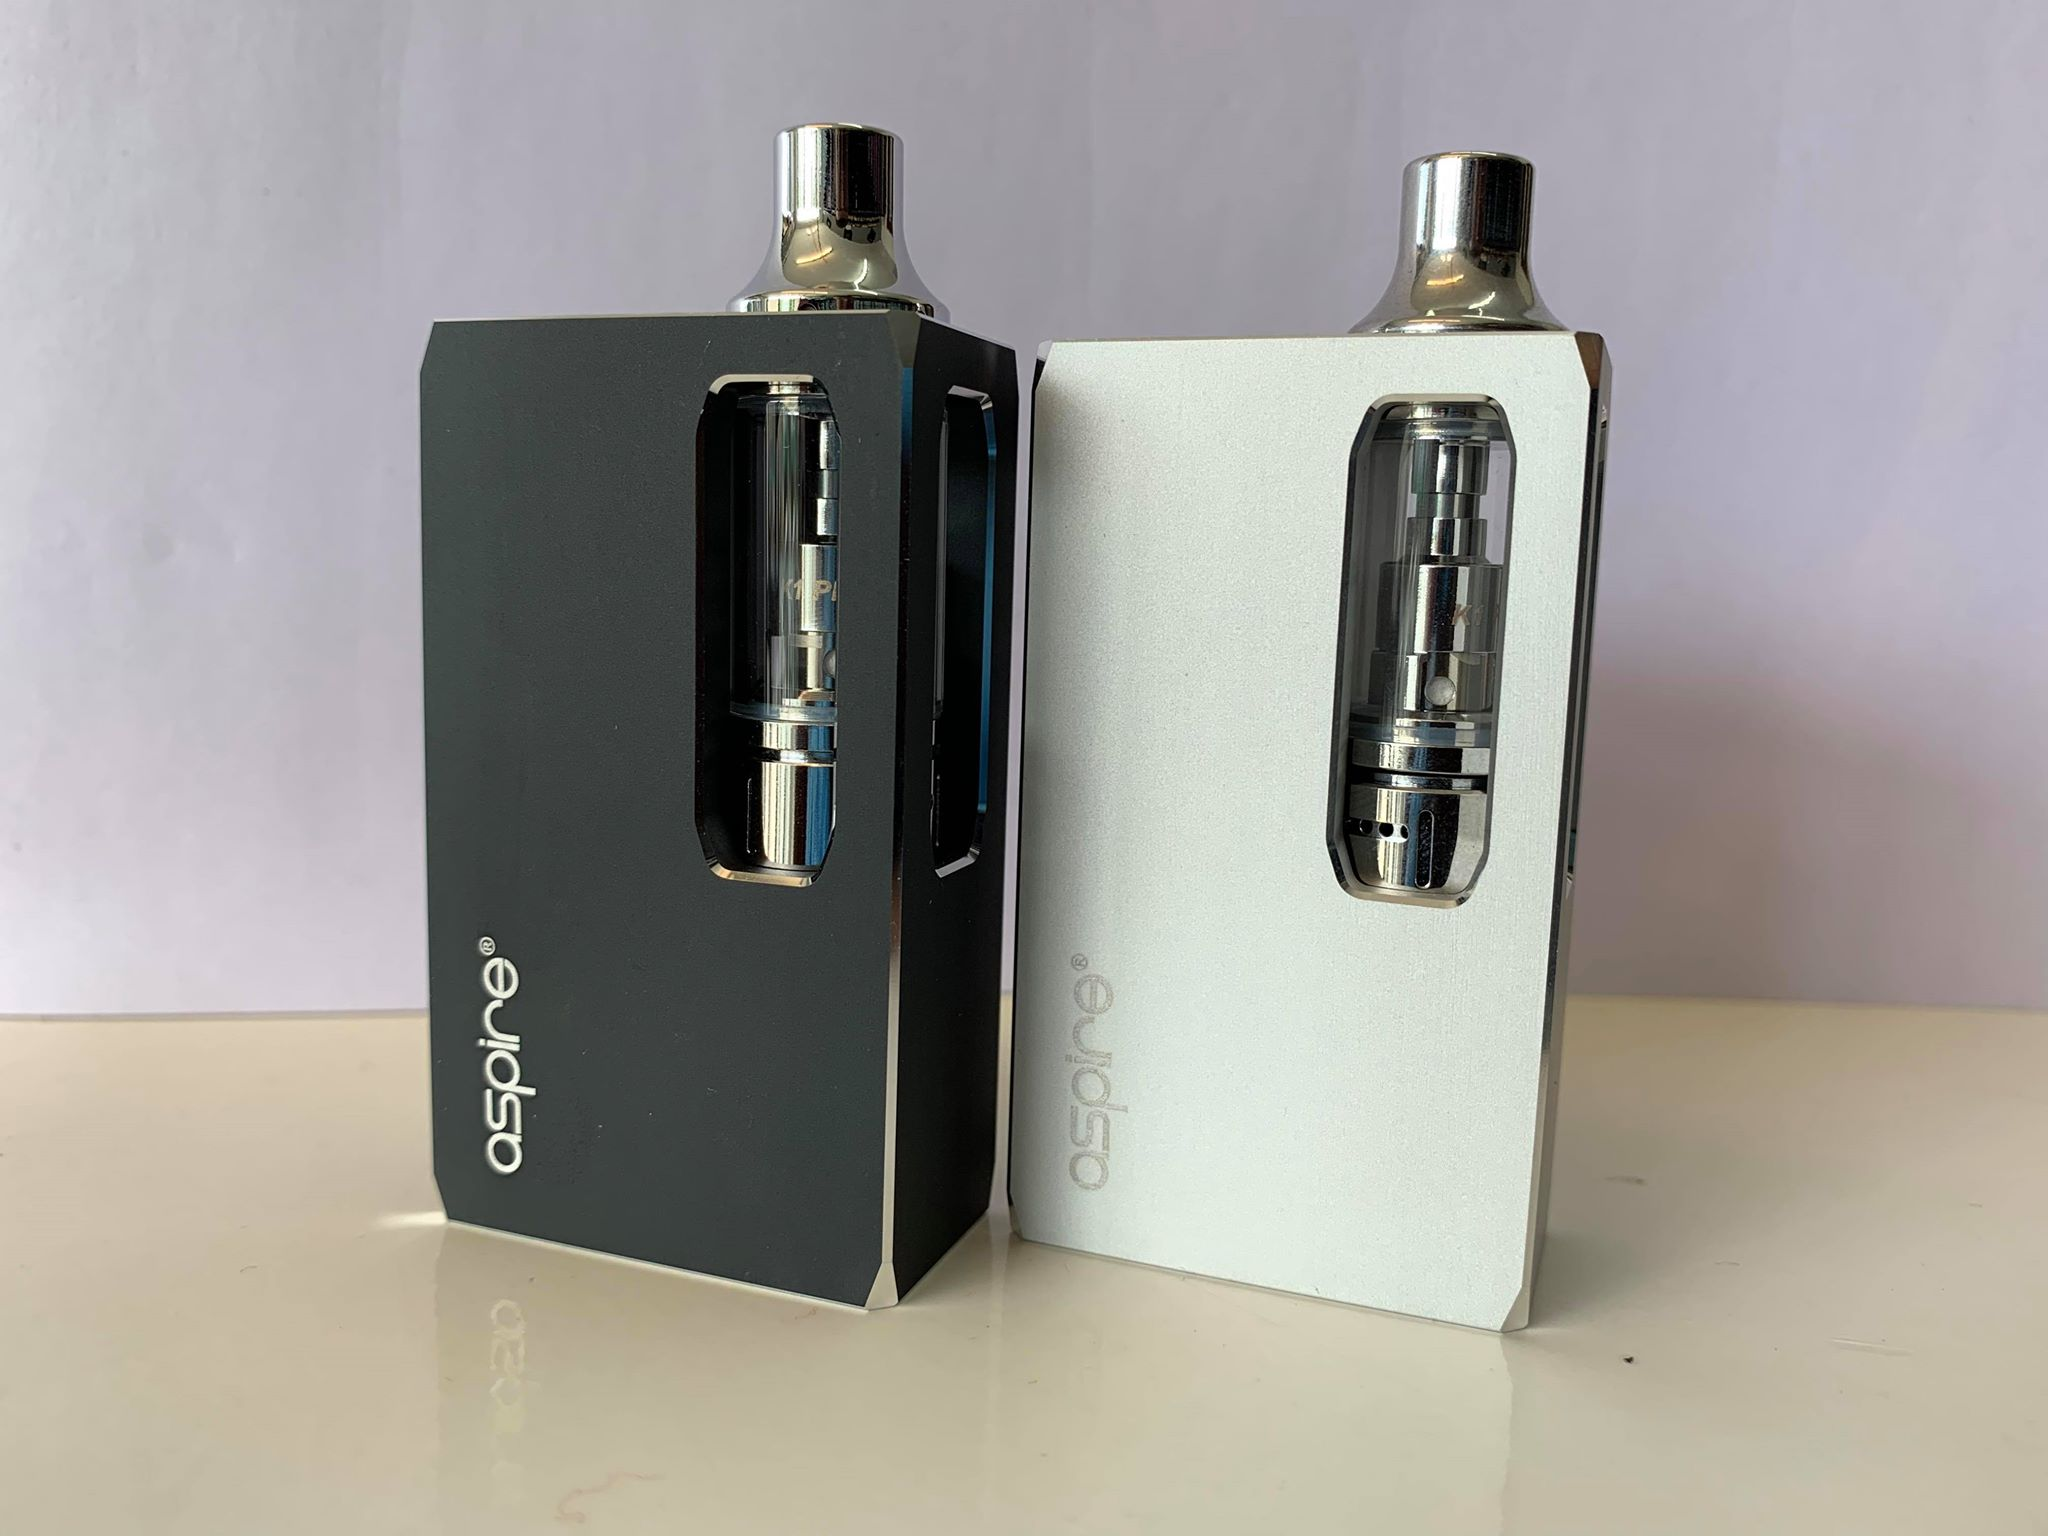 k1 stealth kits Just Mist eCig Vaping Northern Ireland